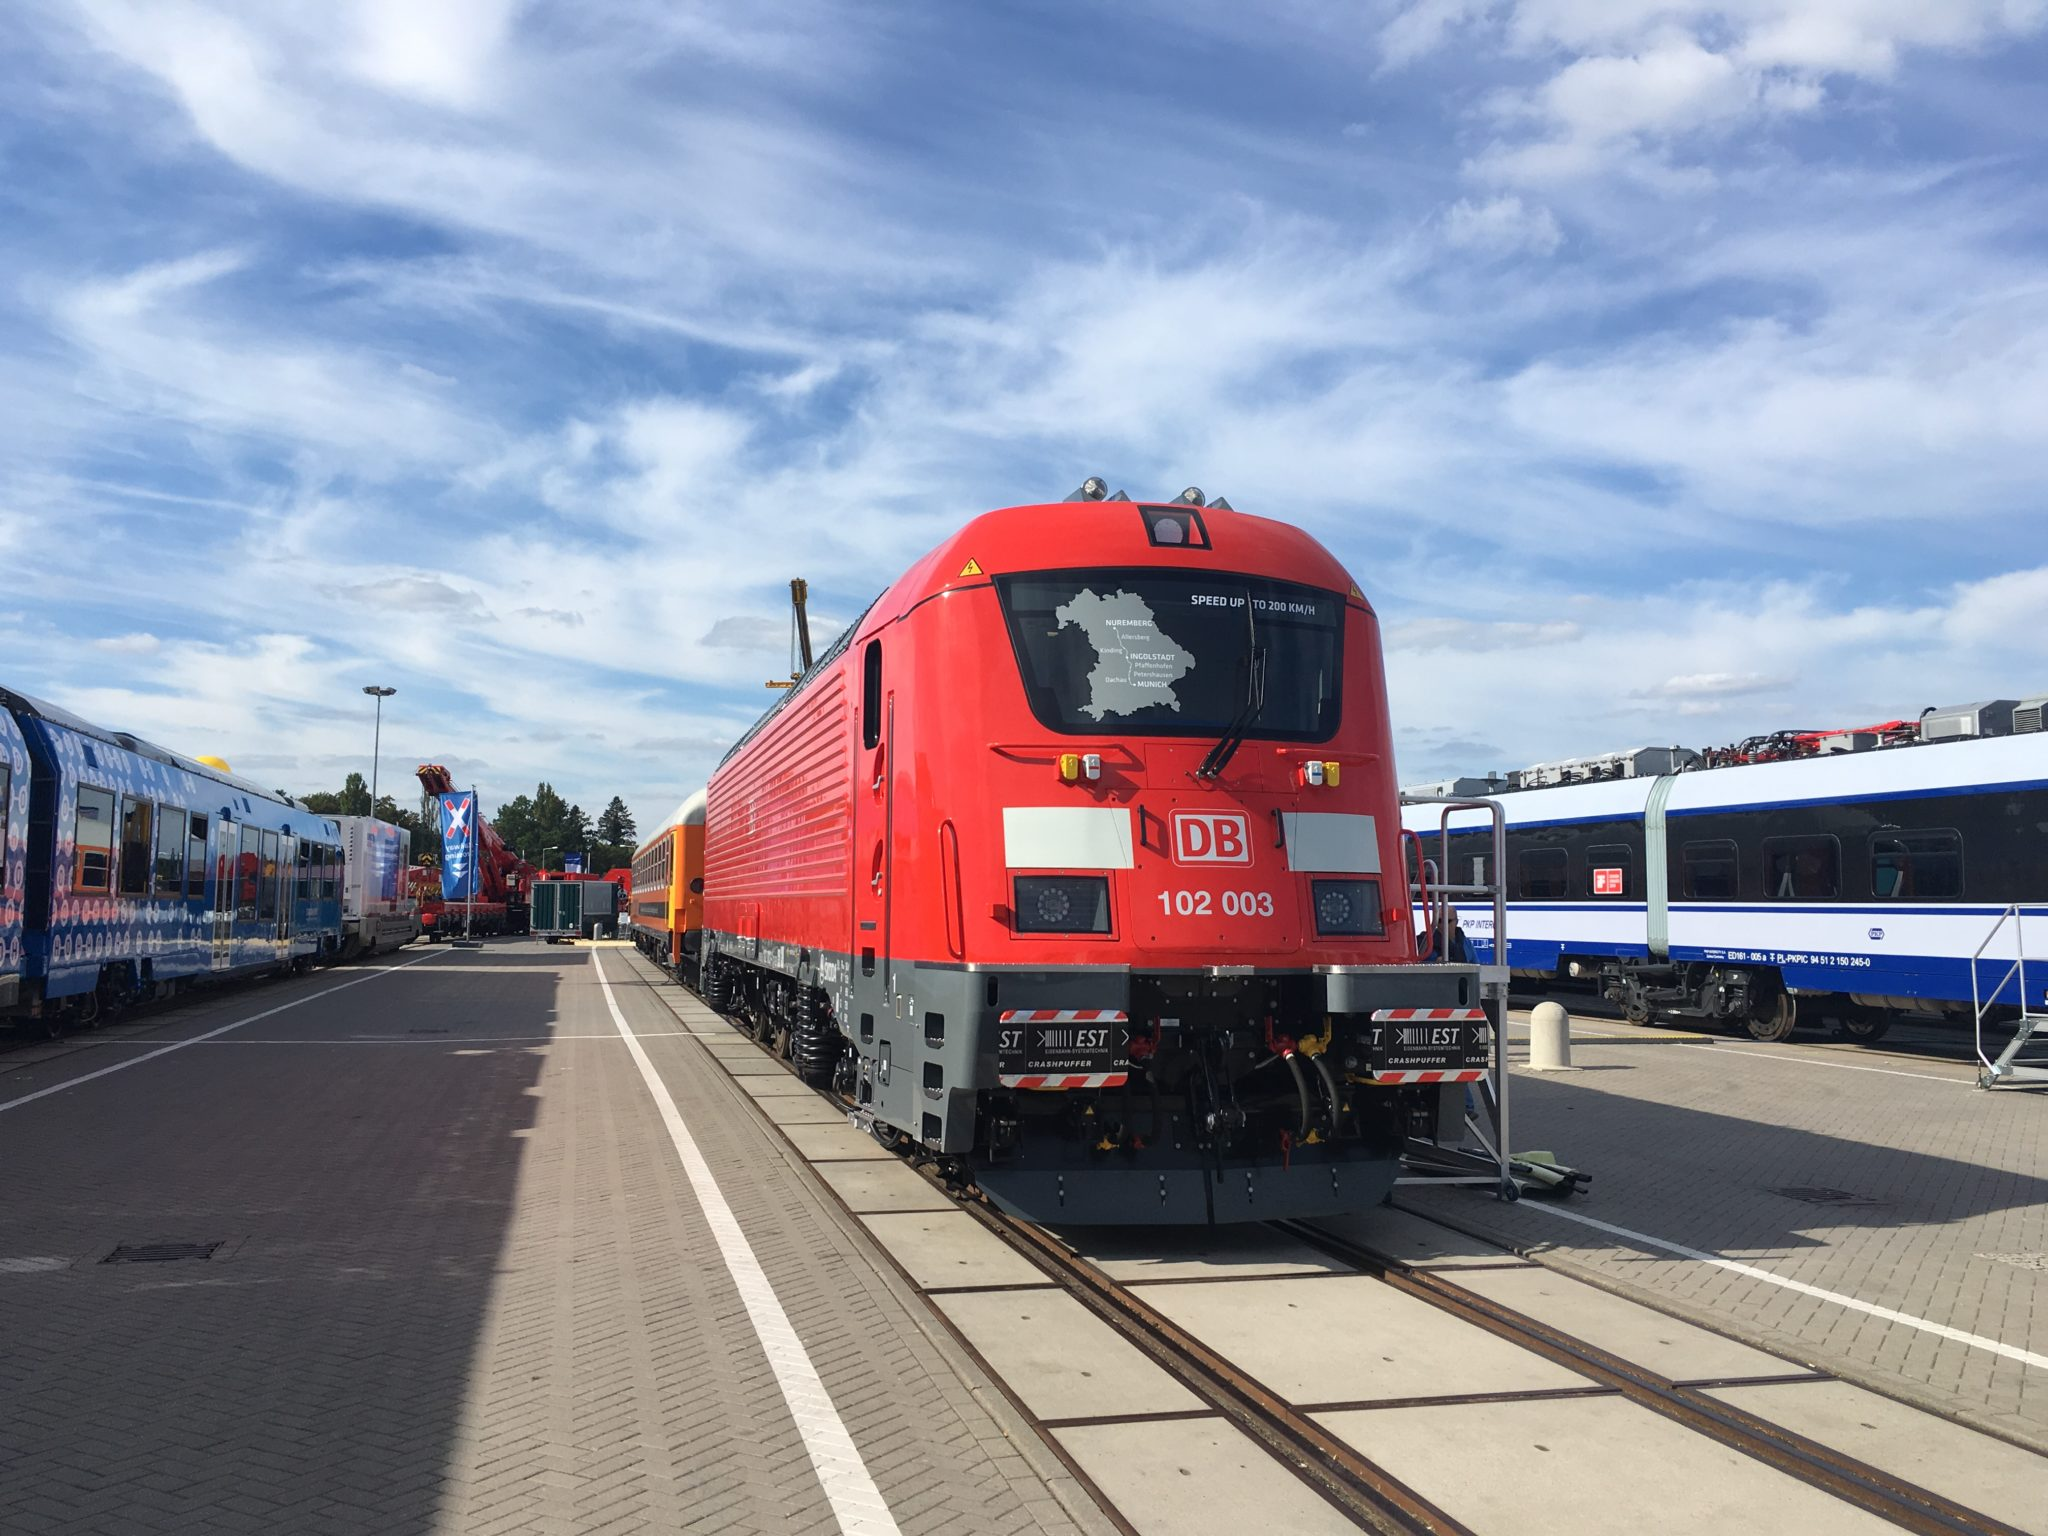 Rolling Stock Highlights at InnoTrans 2018: push-pull trainset